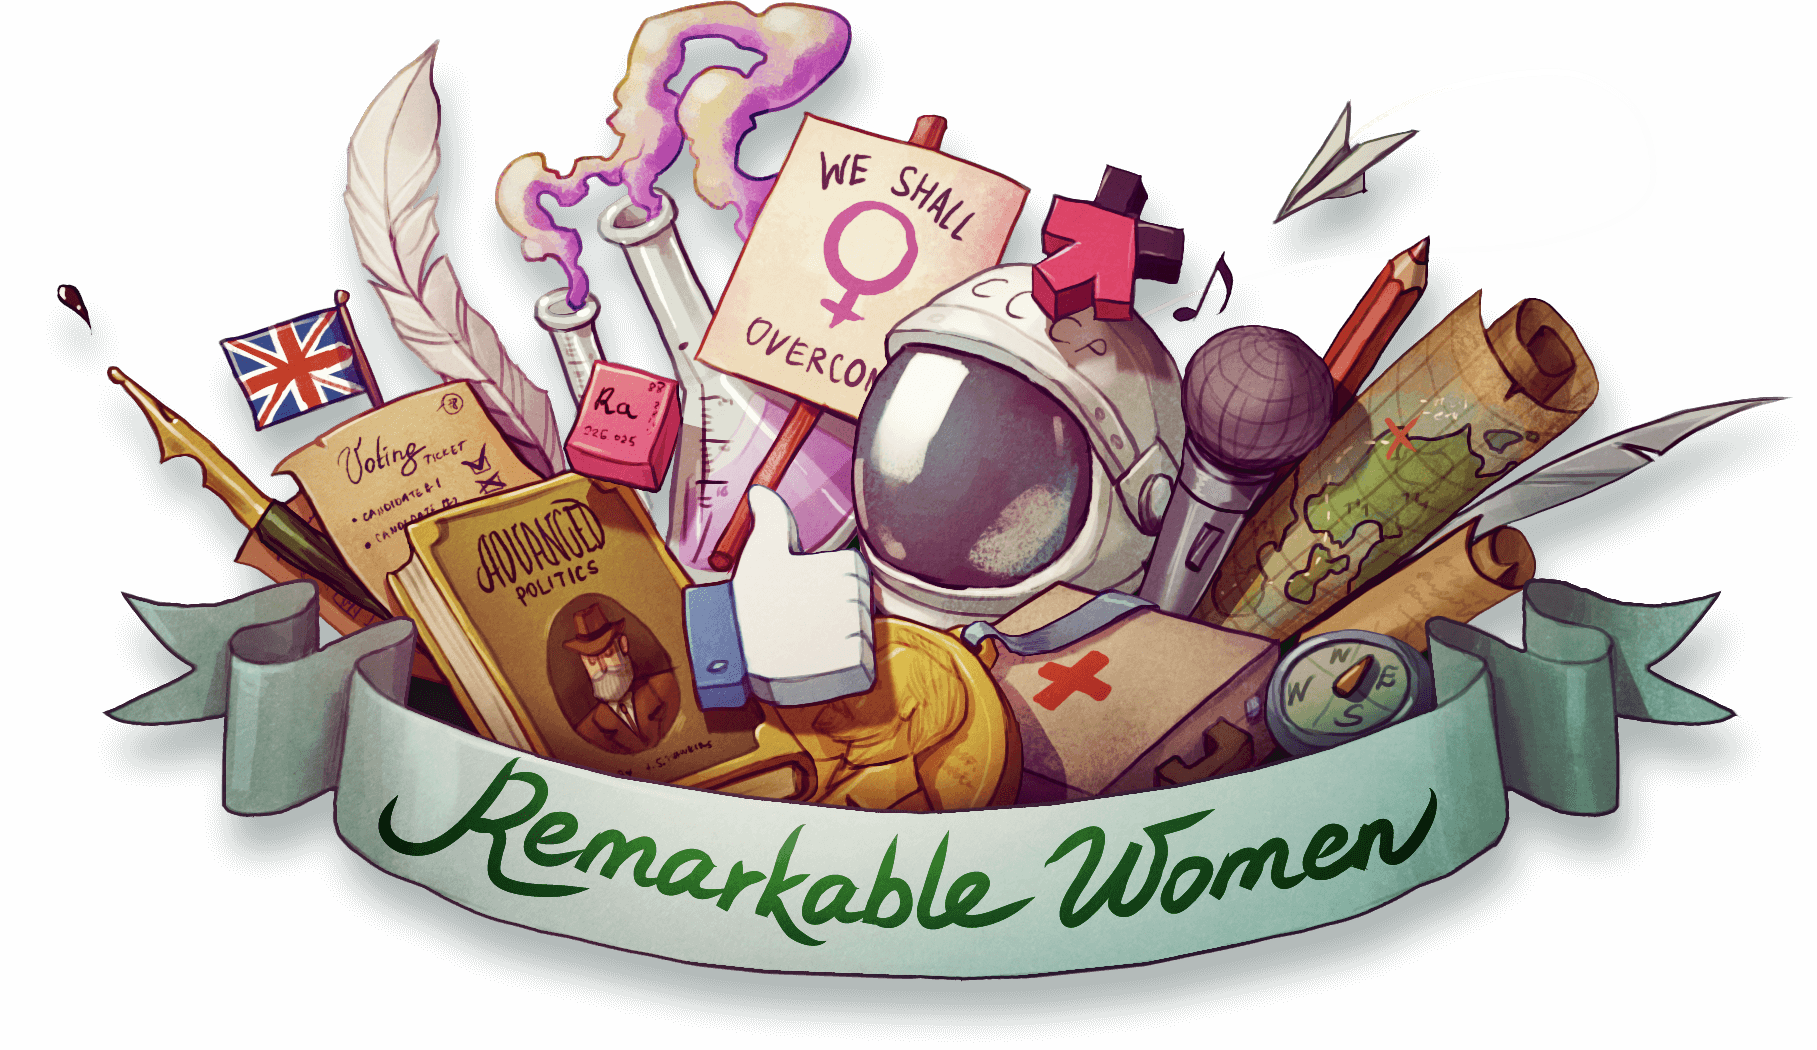 Woman remembers clipart picture freeuse Remarkable Women: 20 Women Who Shaped the World | Feelunique picture freeuse